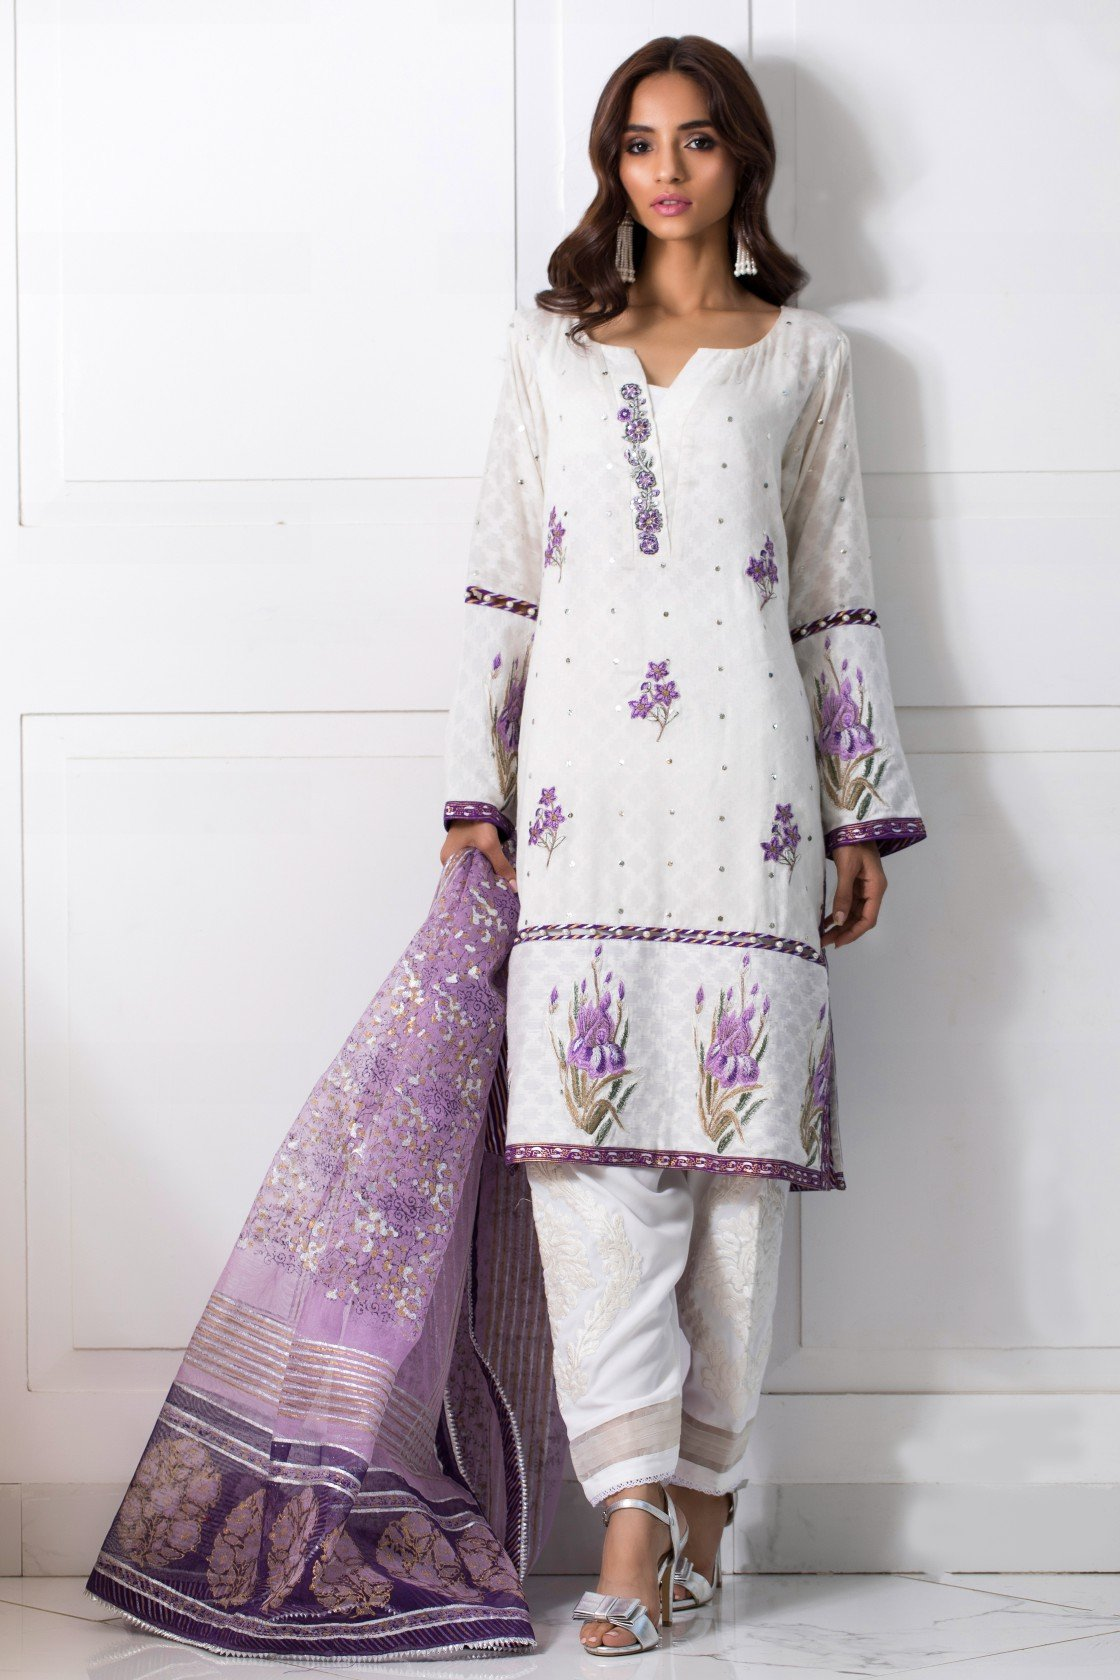 Shehrnaz - White Cotton Net Shirt With Purple Dupatta & White Shalwar